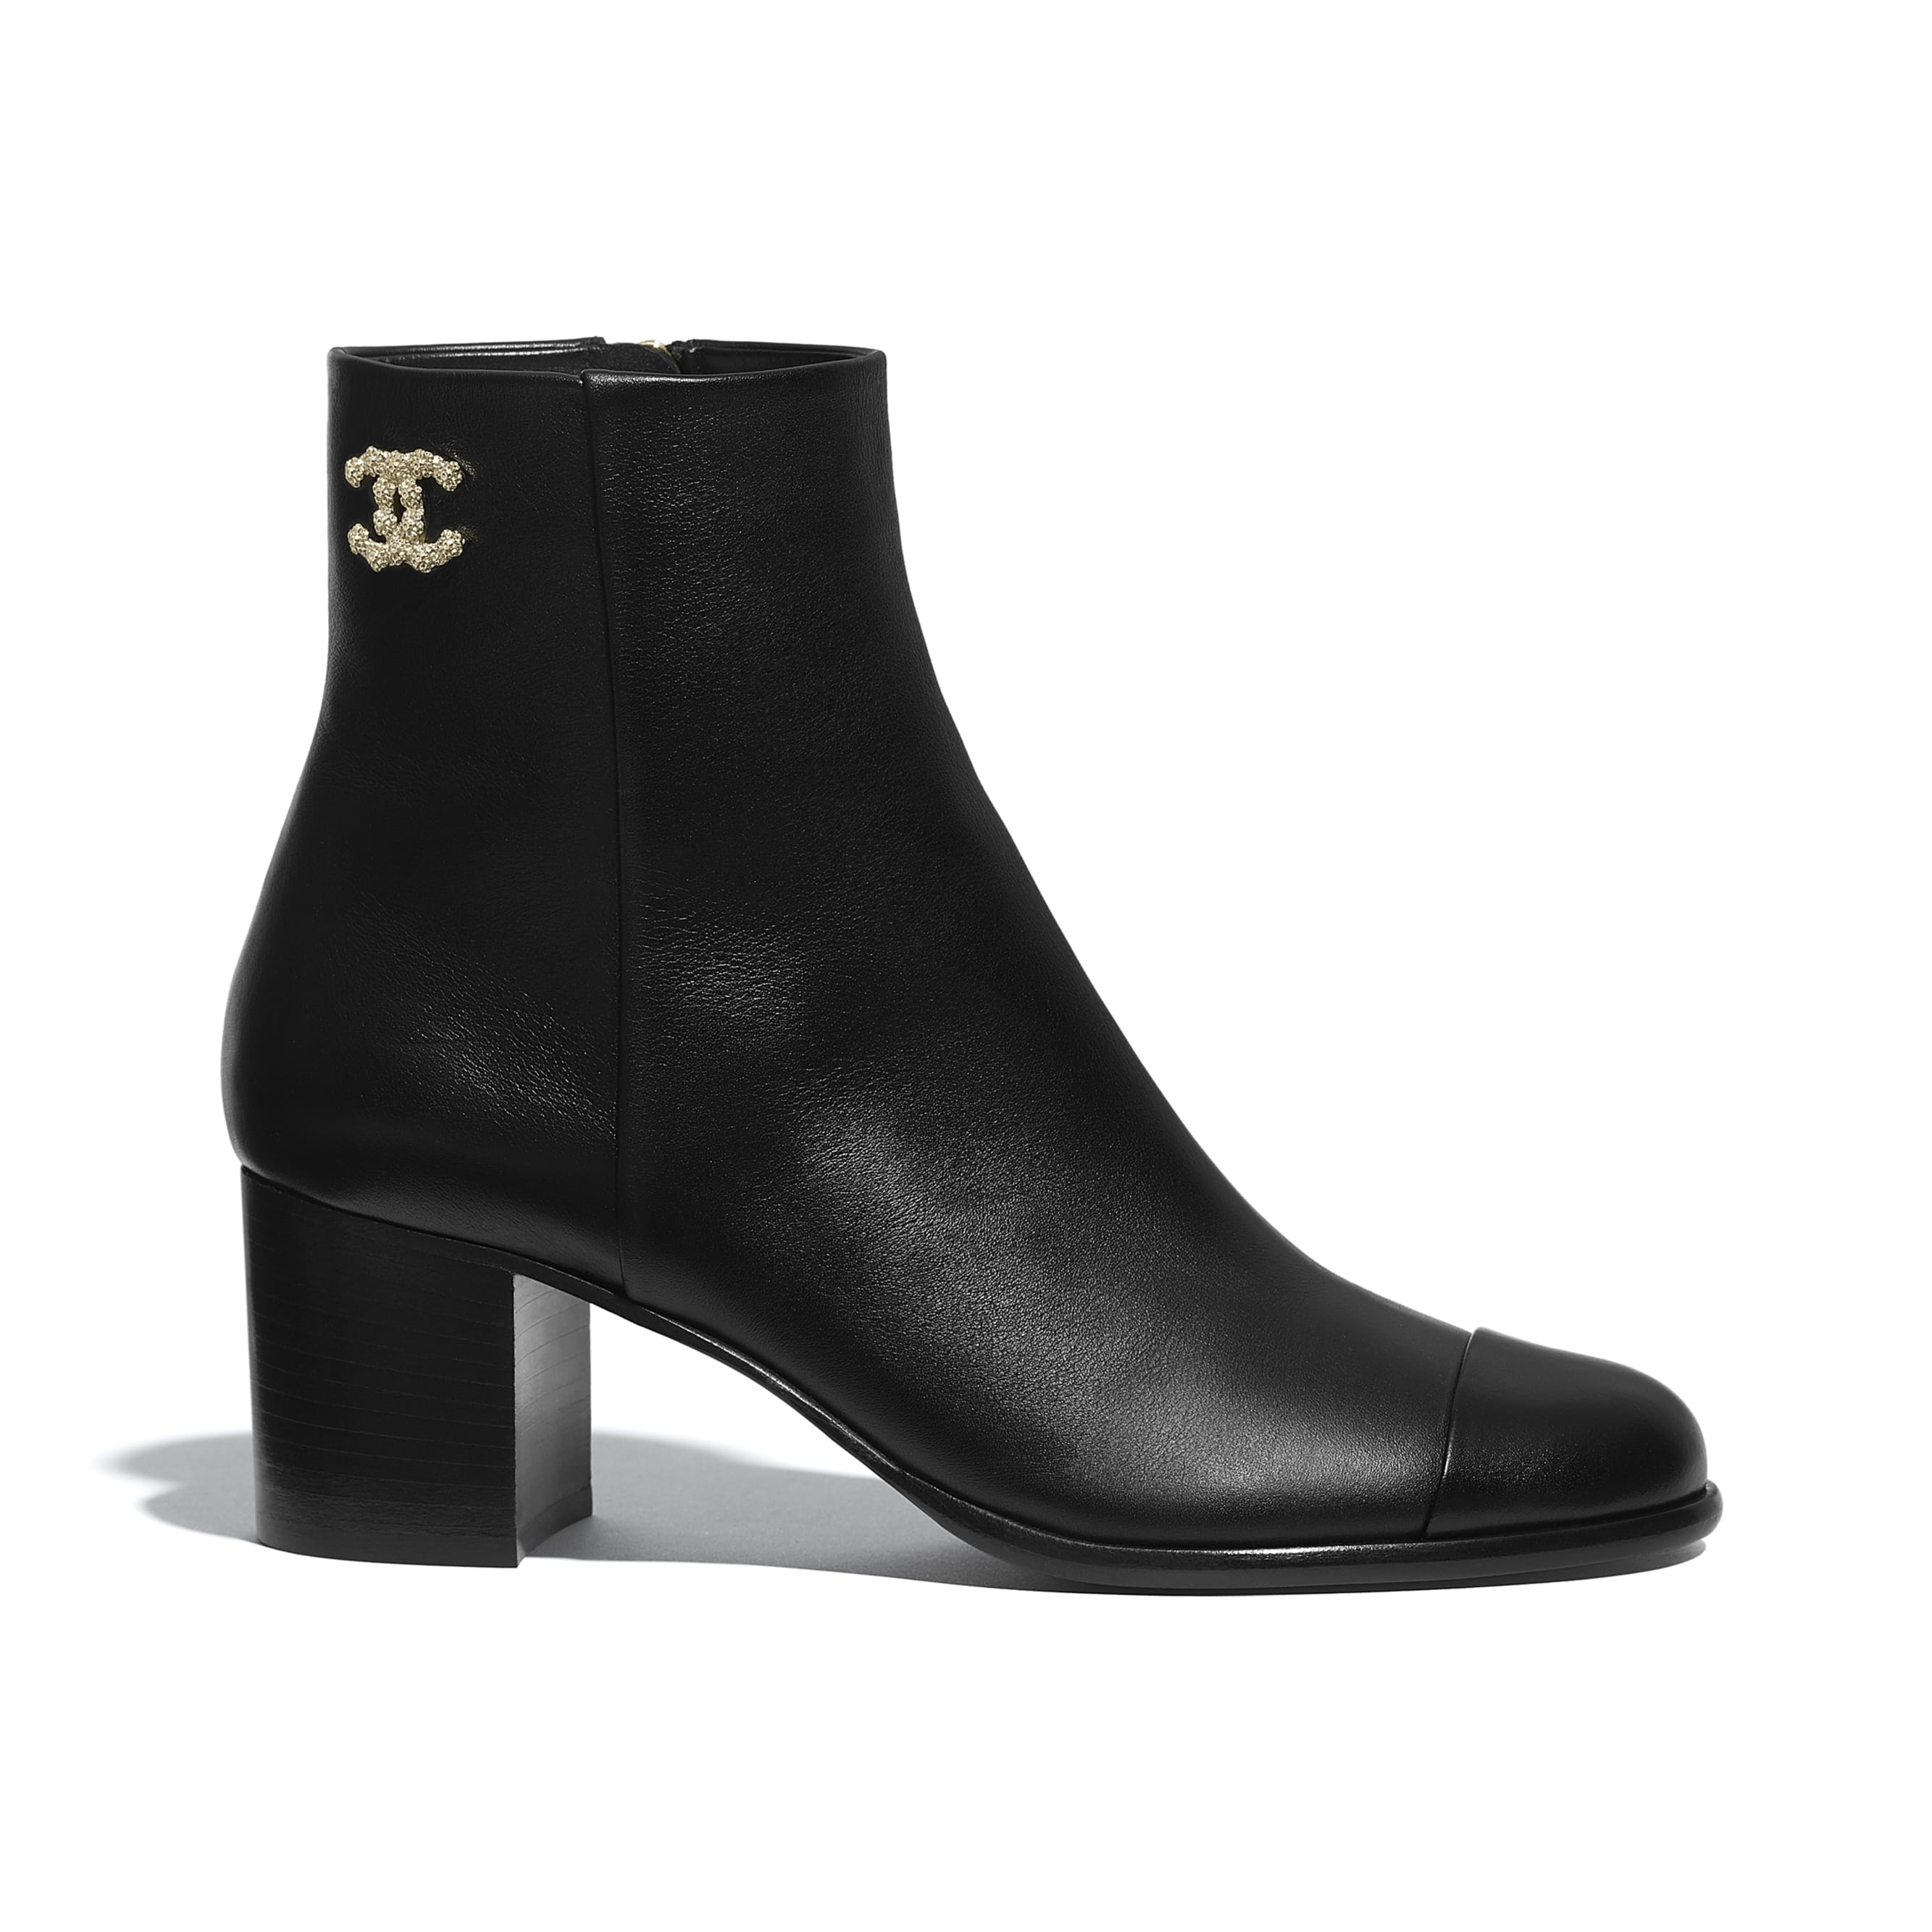 Ankle Boots - Black - Calfskin - CHANEL - Default view - see standard sized version